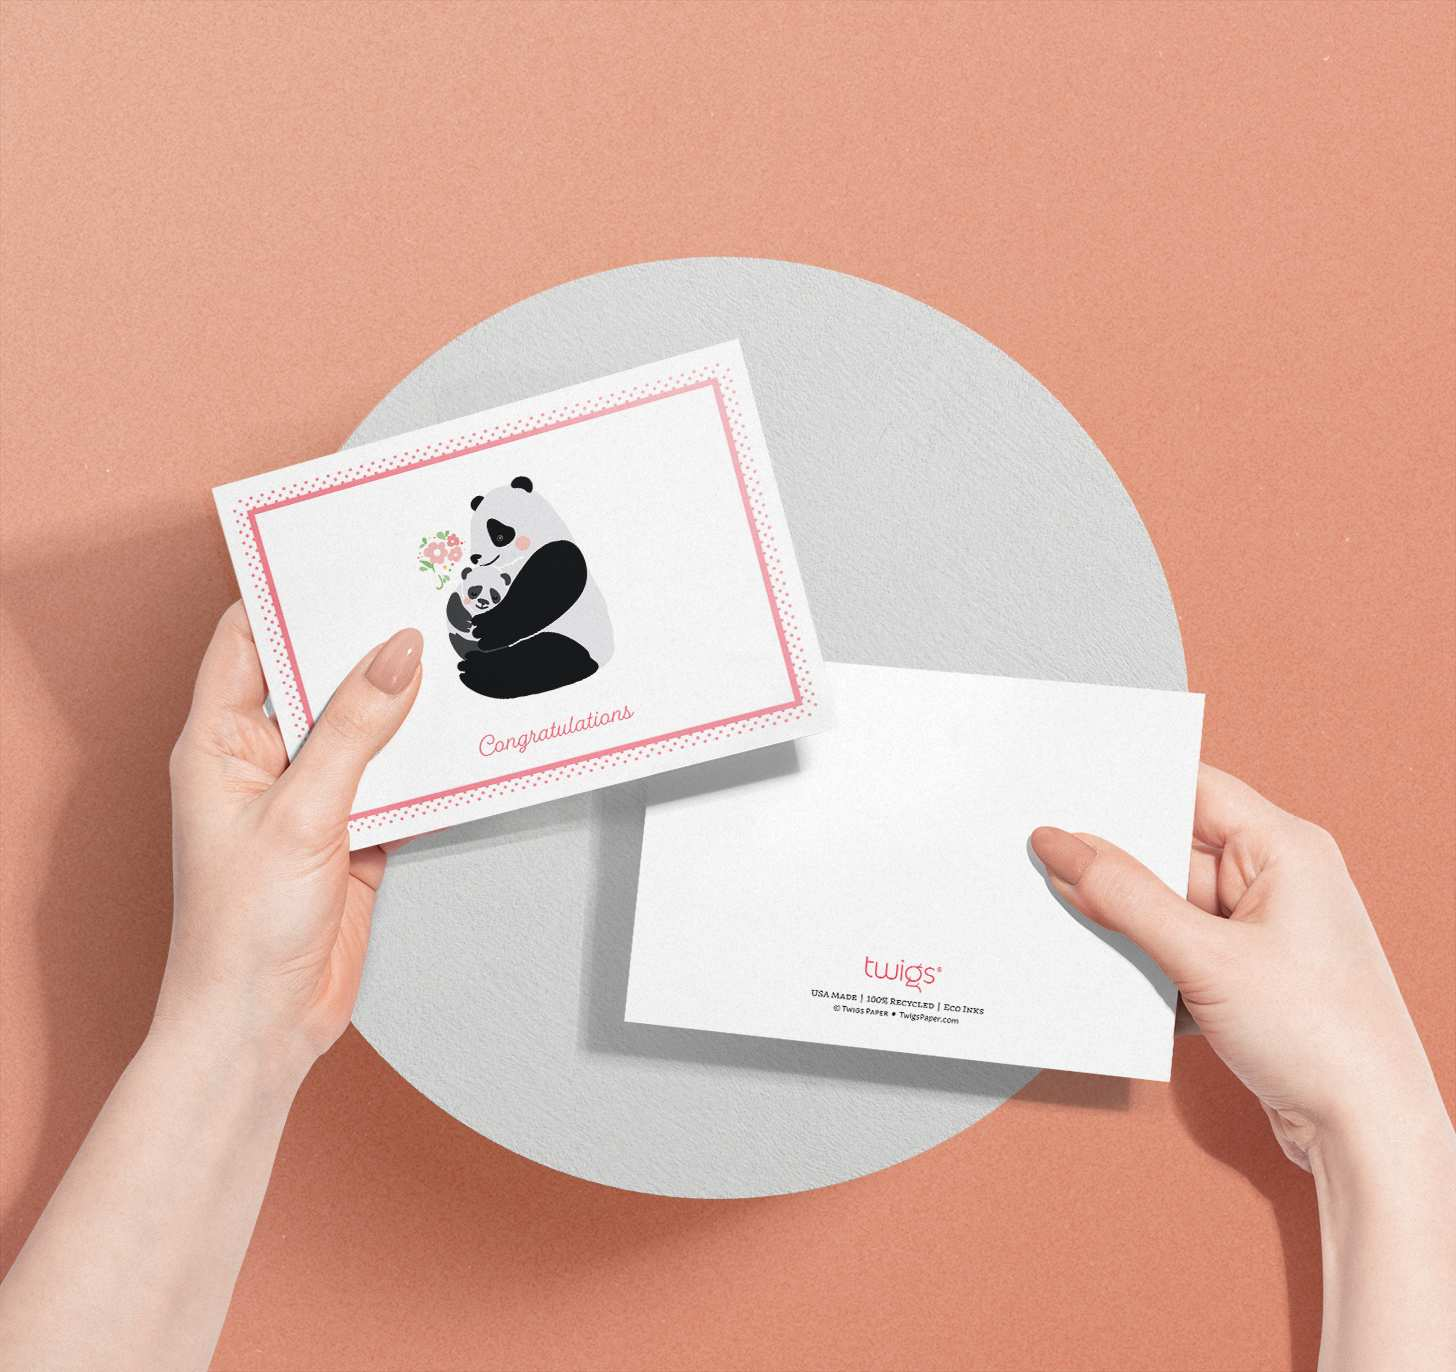 Woman's hands holding two cards with mother and baby panda designs